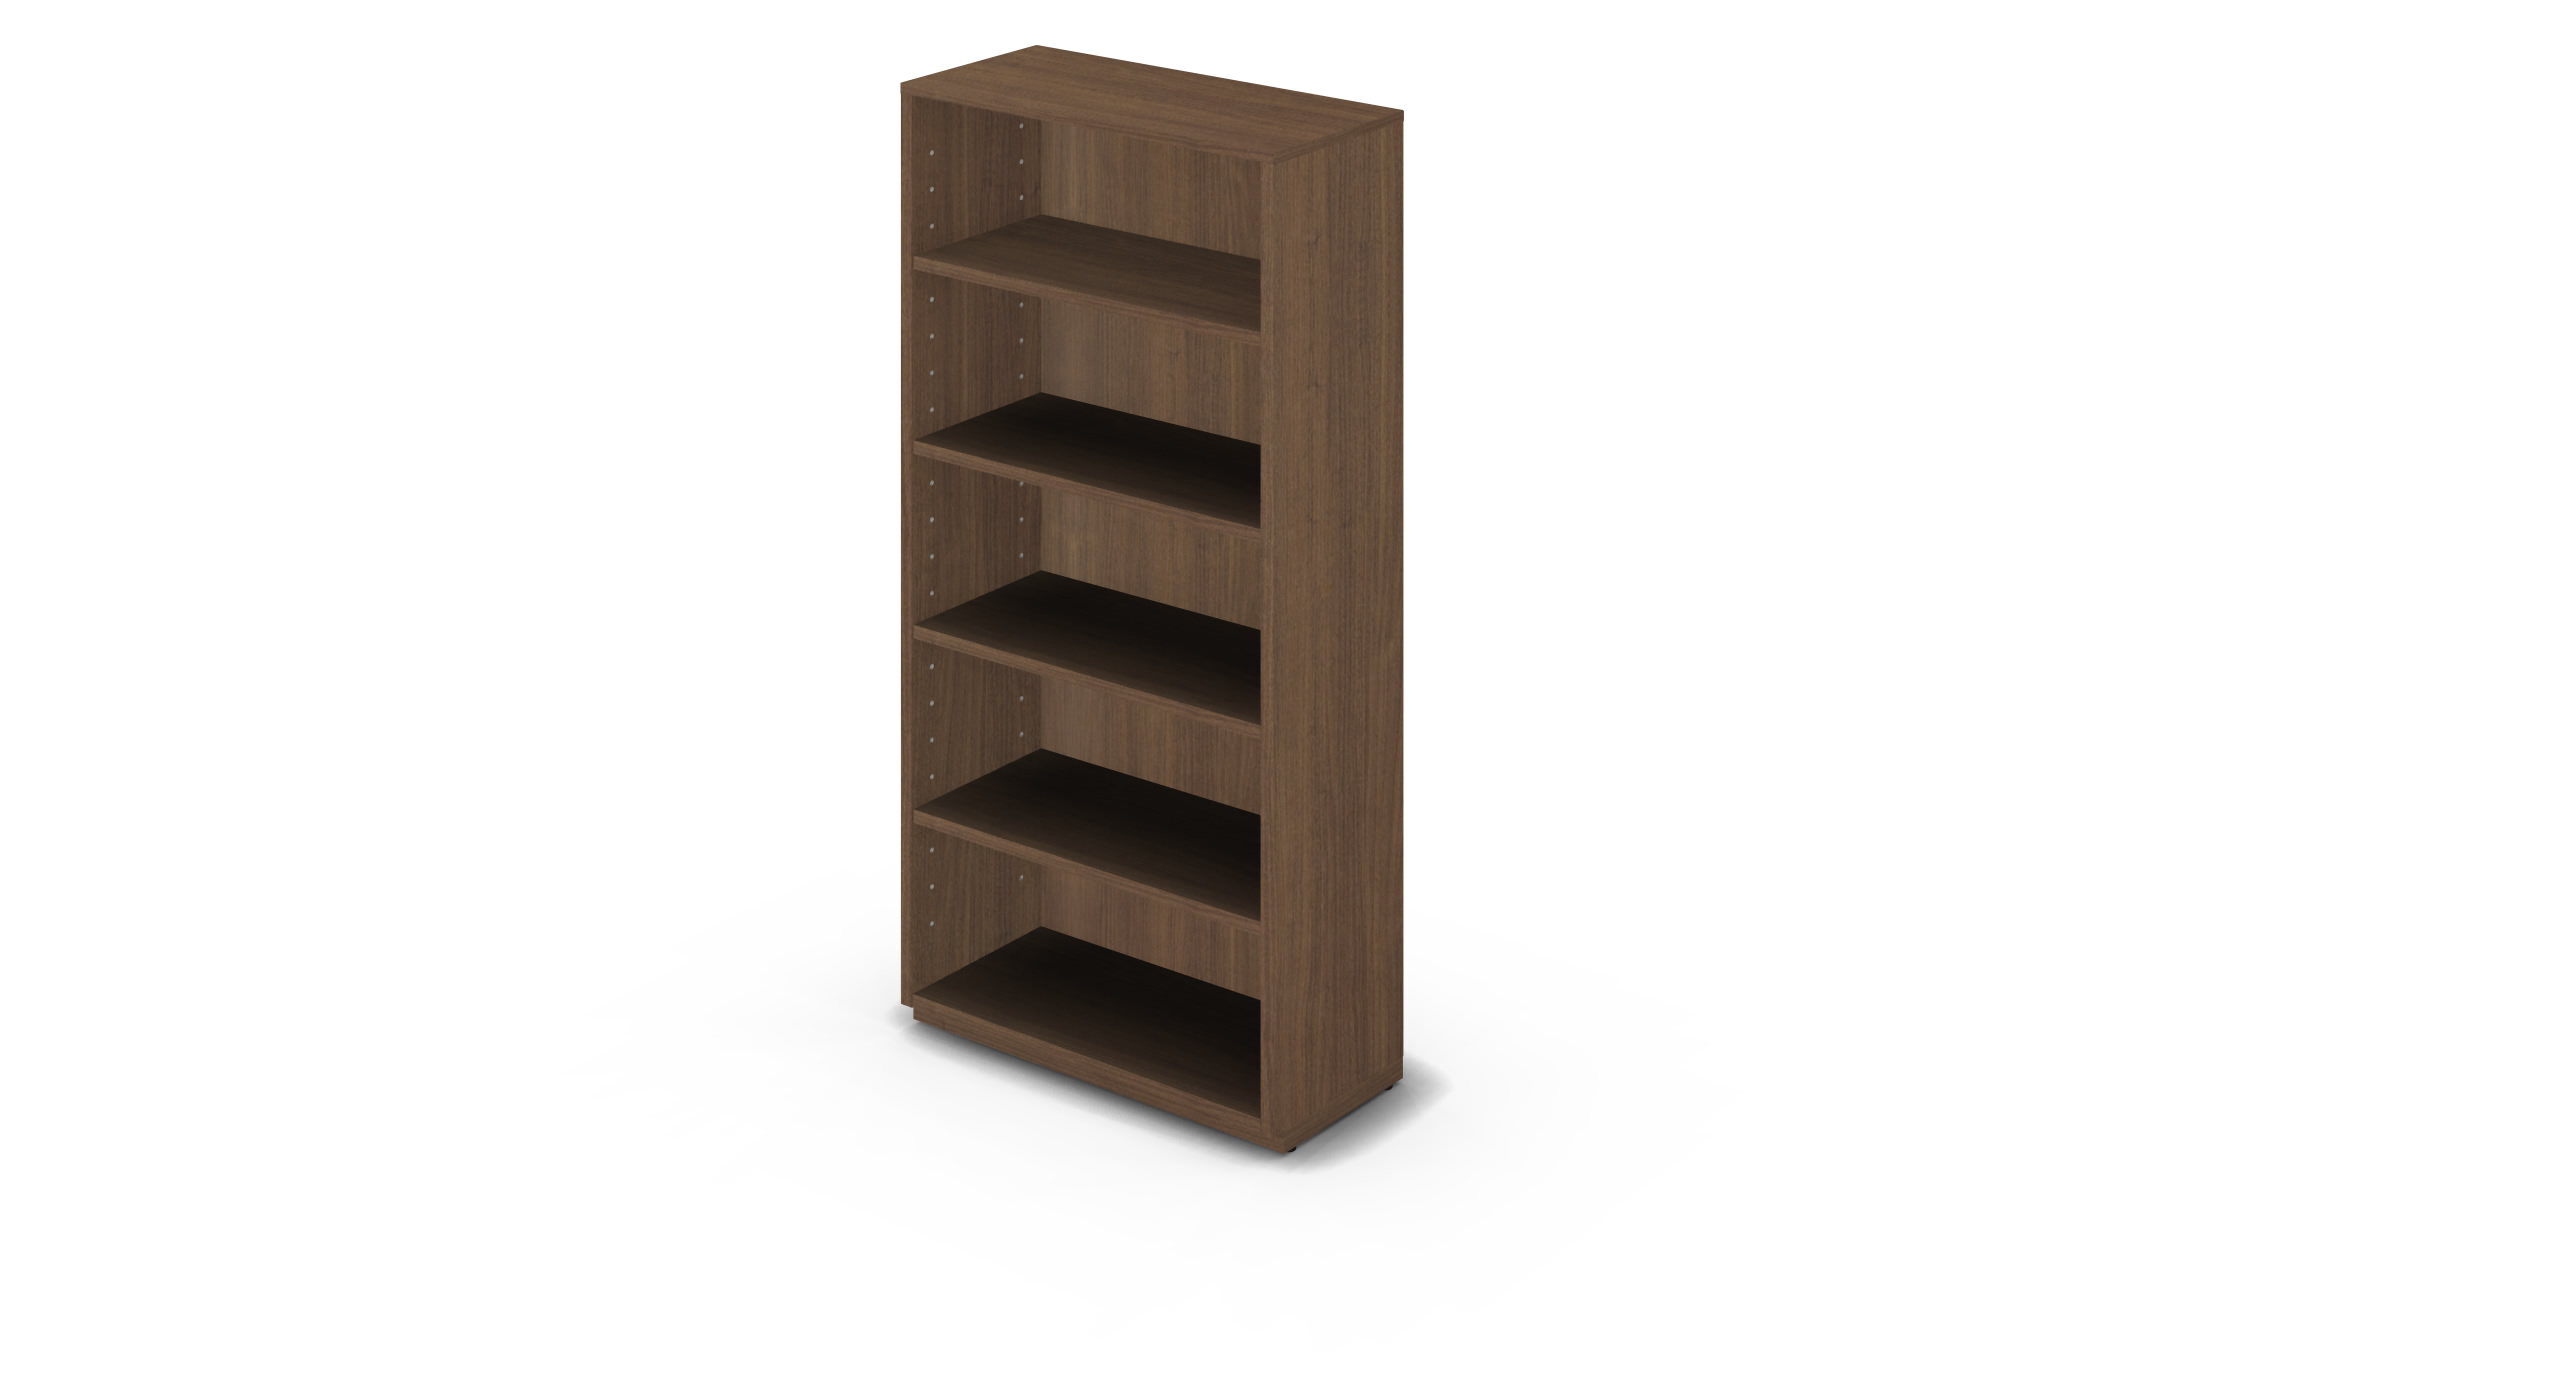 Shelf_800x350x1800_Walnut